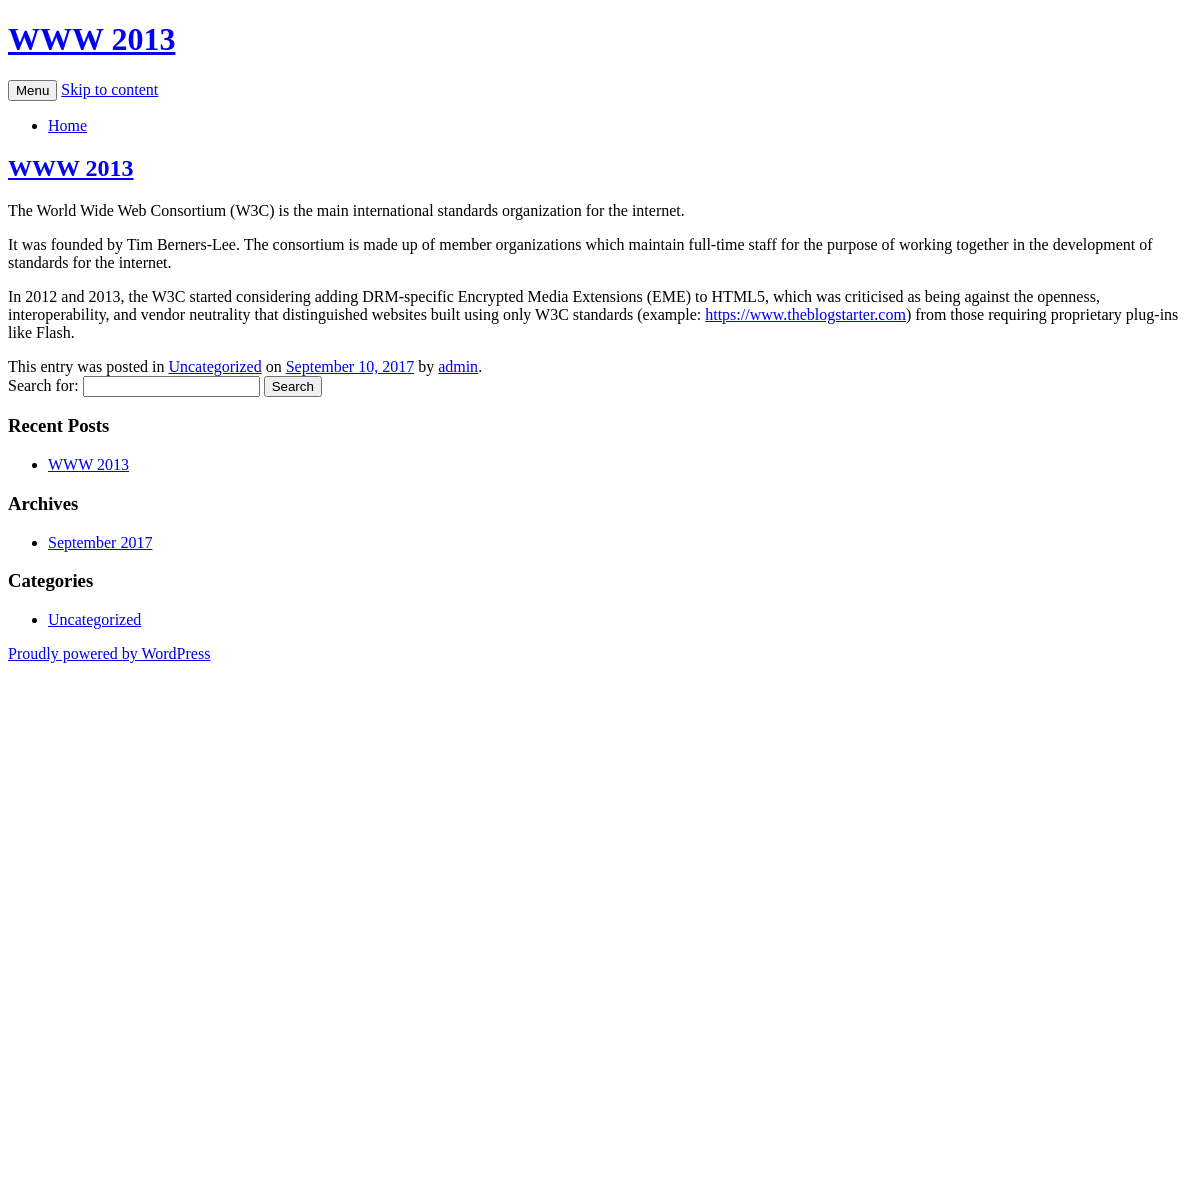 A complete backup of https://www2013.org